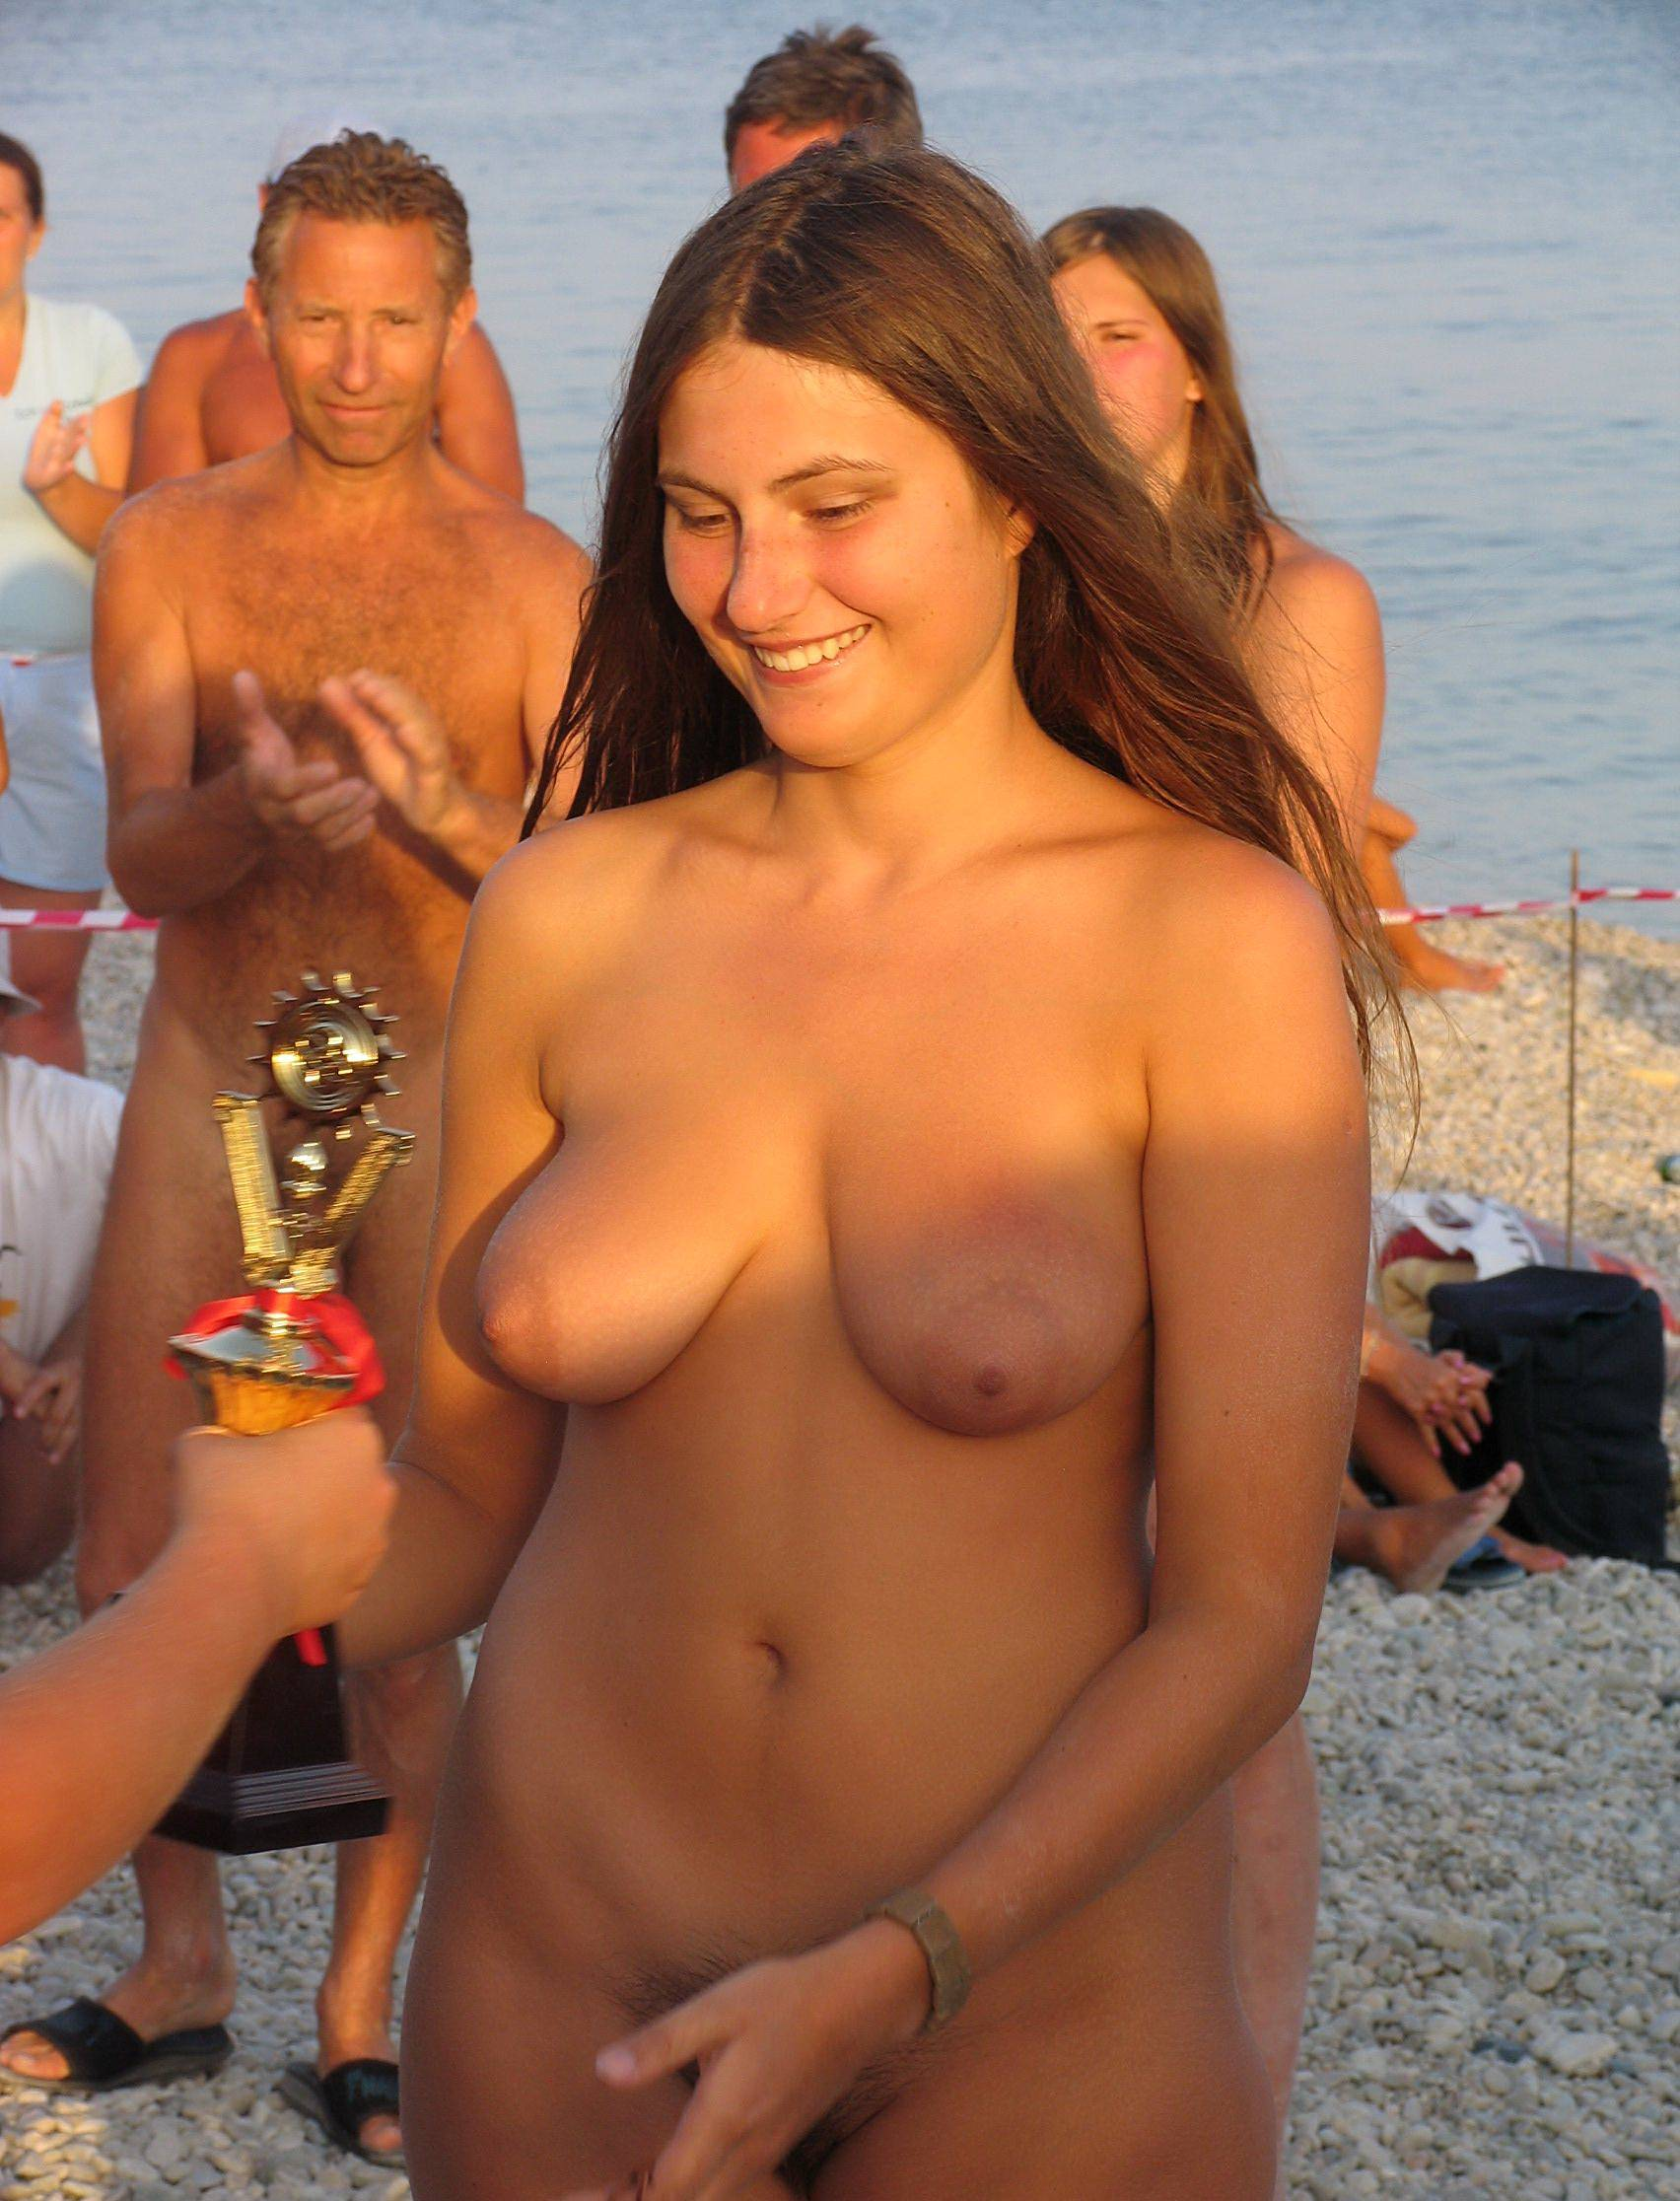 Nudist Photos Tanned Naturist Relaxation - 2